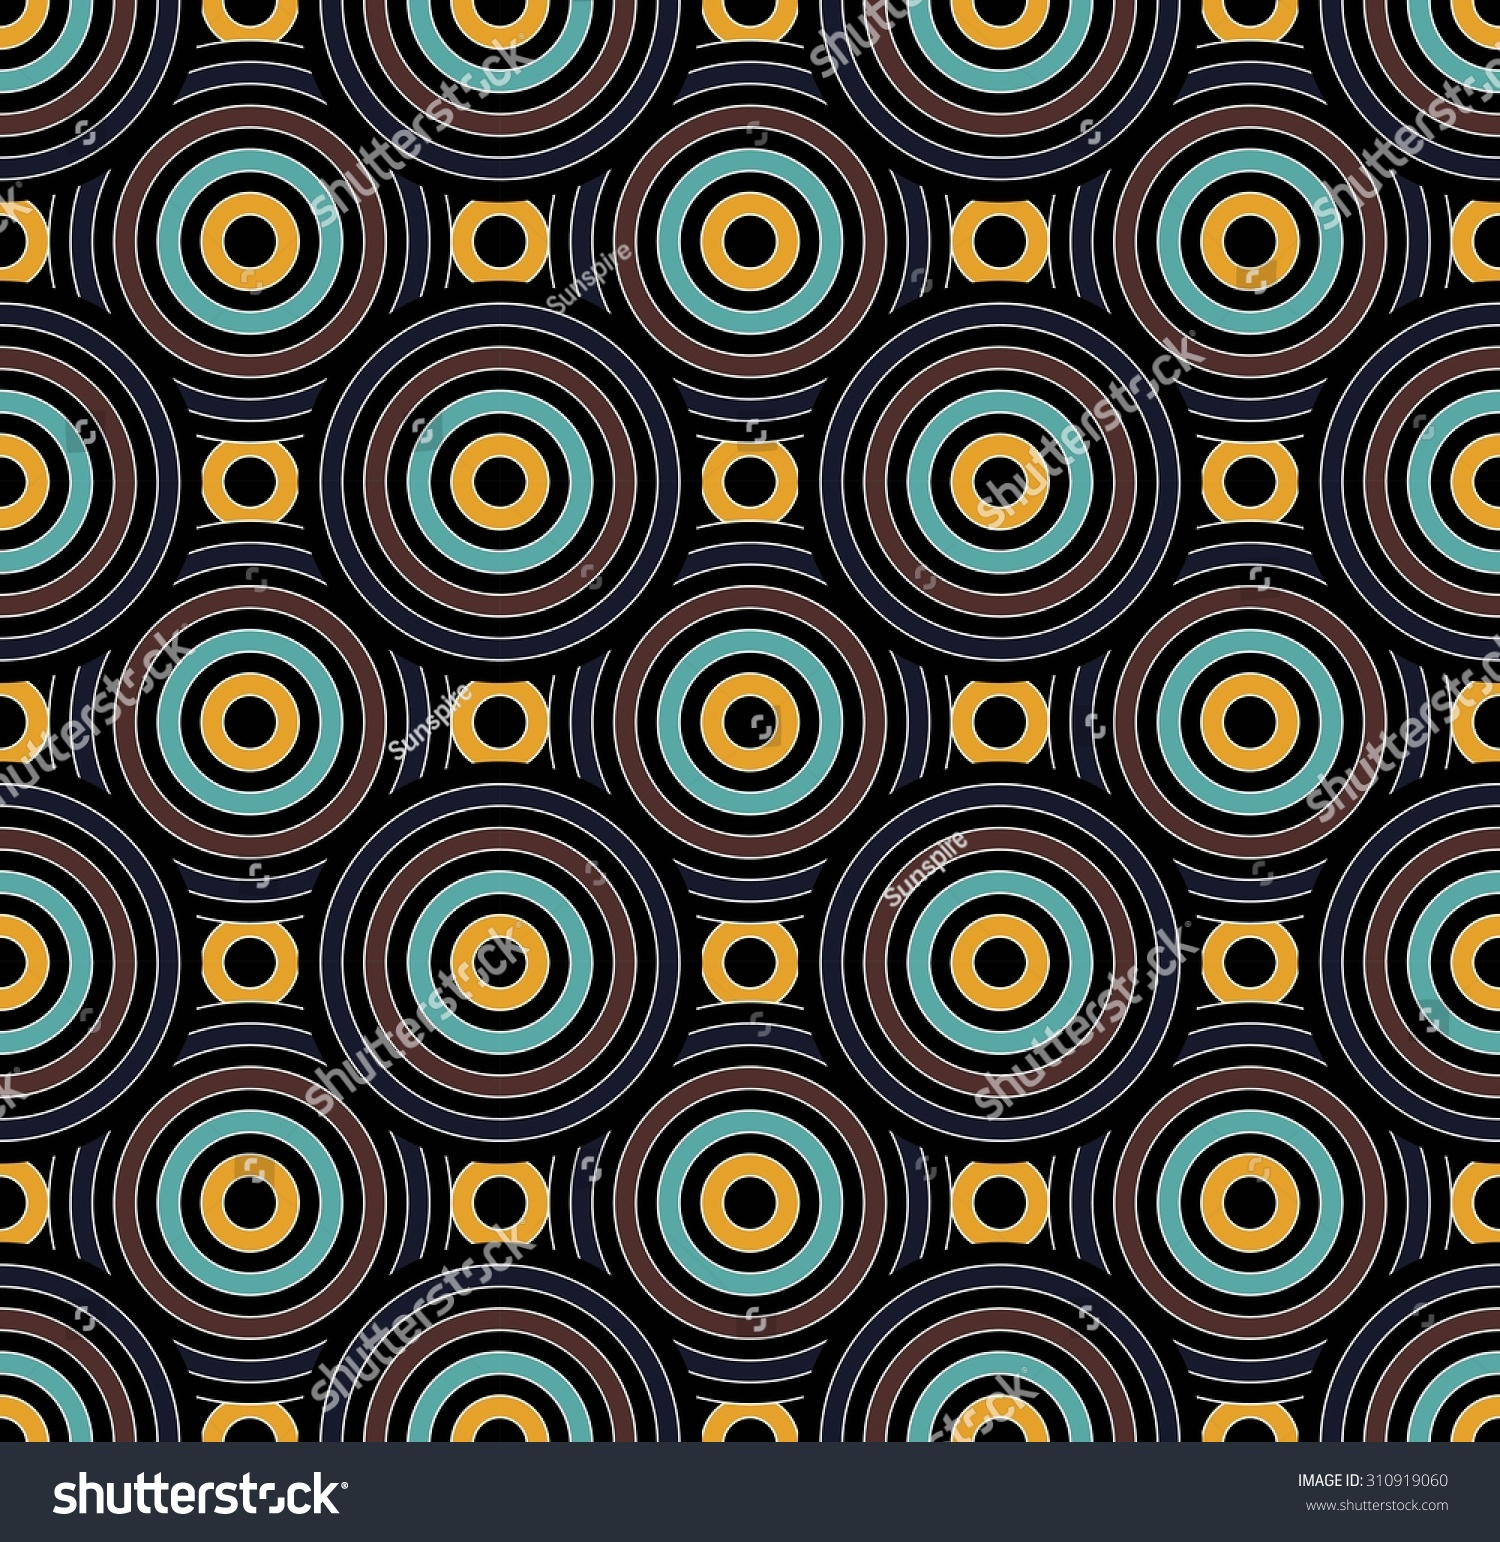 Bed sheets designs texture - Vector Modern Seamless Pattern Circles Colorful Background Textile Print Abstract Texture Fashion